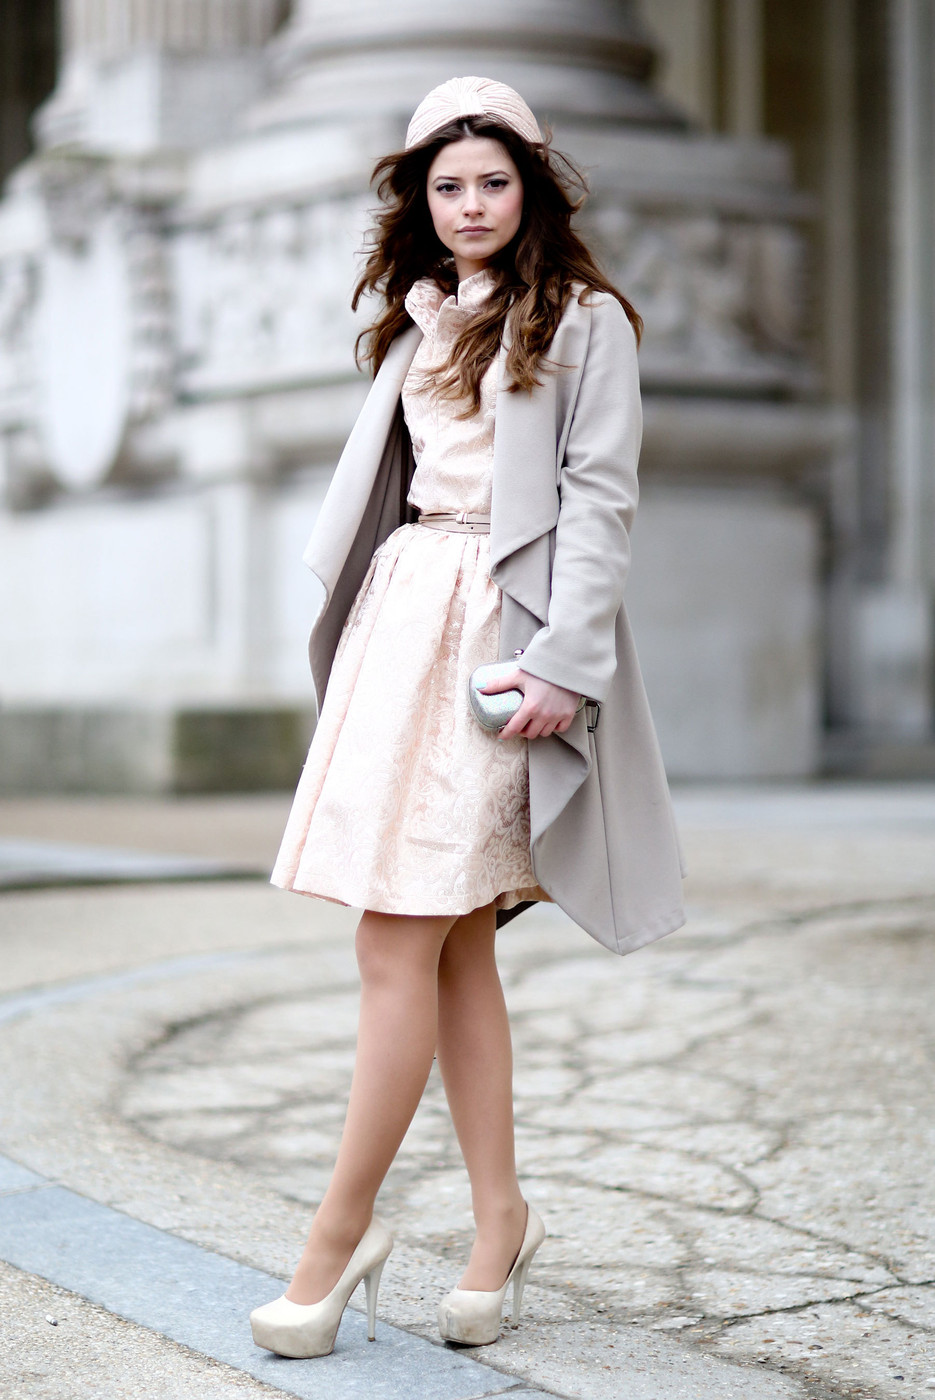 Paris Fashion Week Fall 2013 Attendees Pictures Livingly